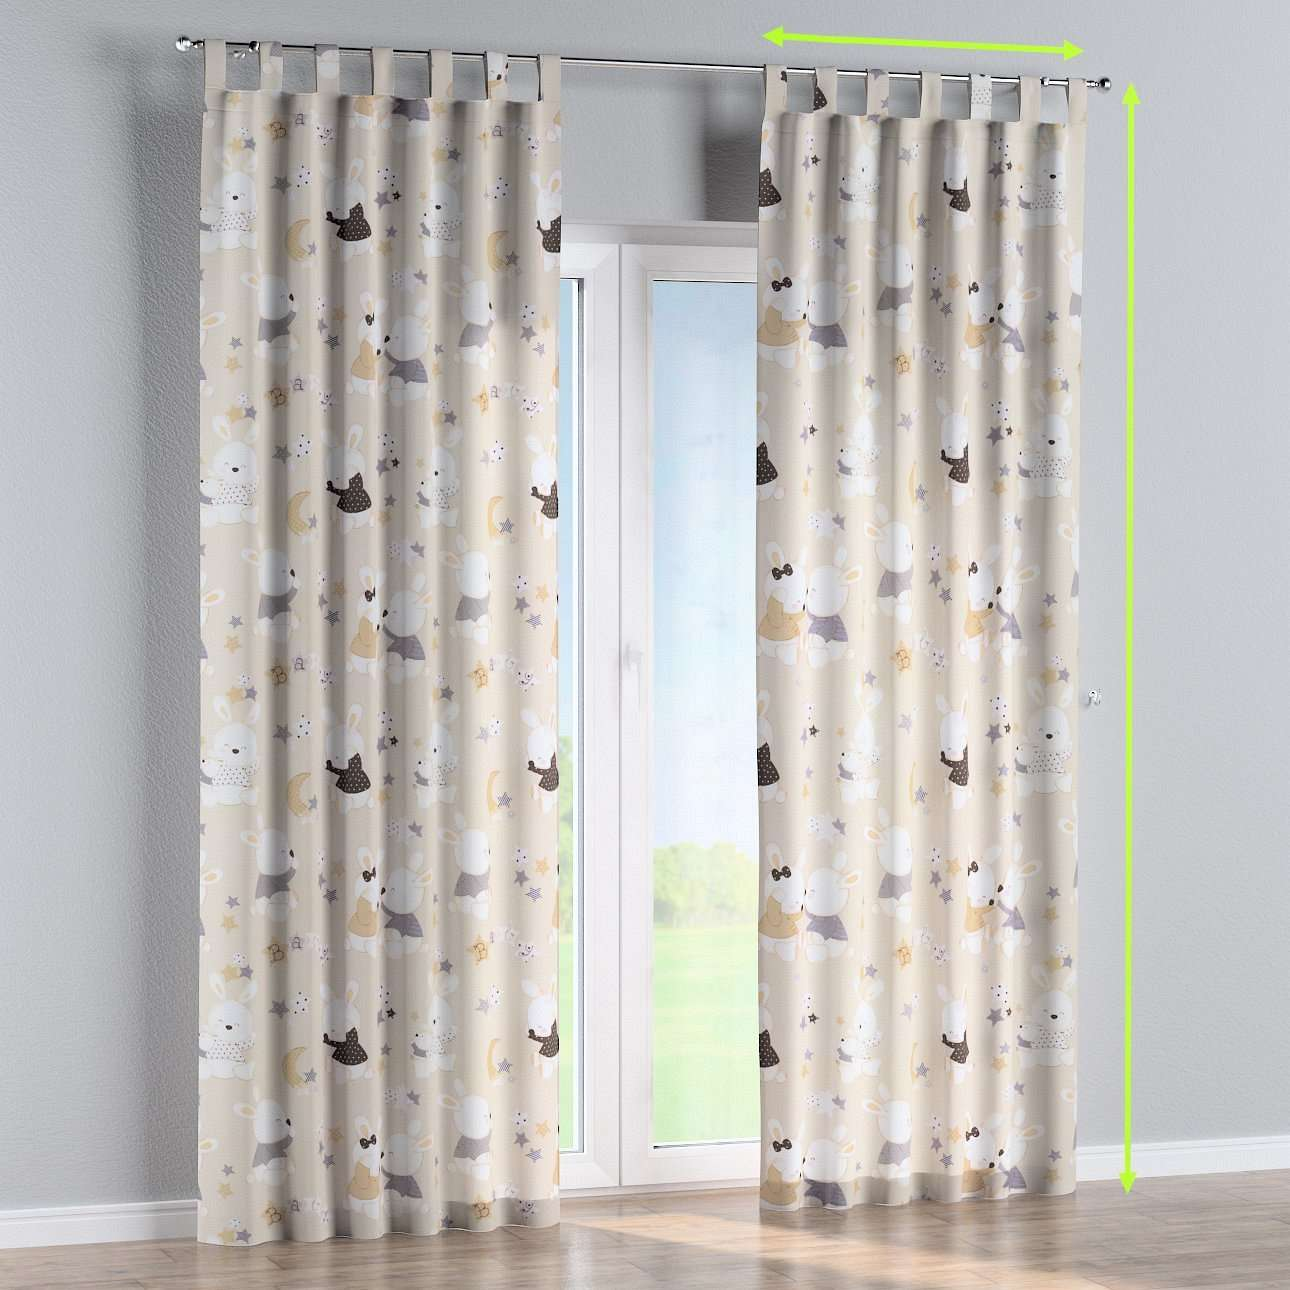 Tab top lined curtains in collection Adventure, fabric: 141-85